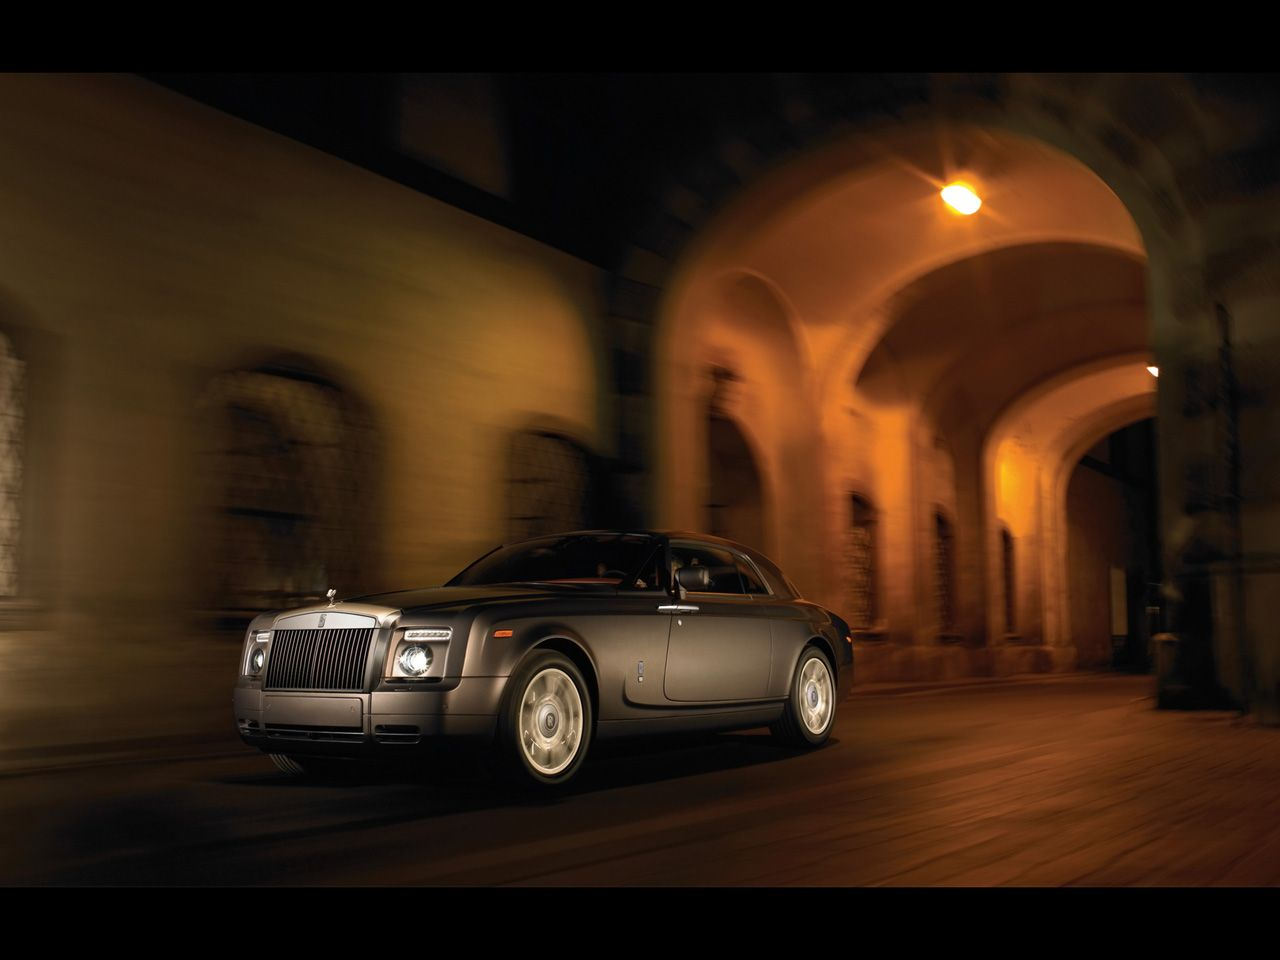 Download 2009 Rolls-Royce Phantom Coupe Images, Picture, Wallpaper wallpaper picture